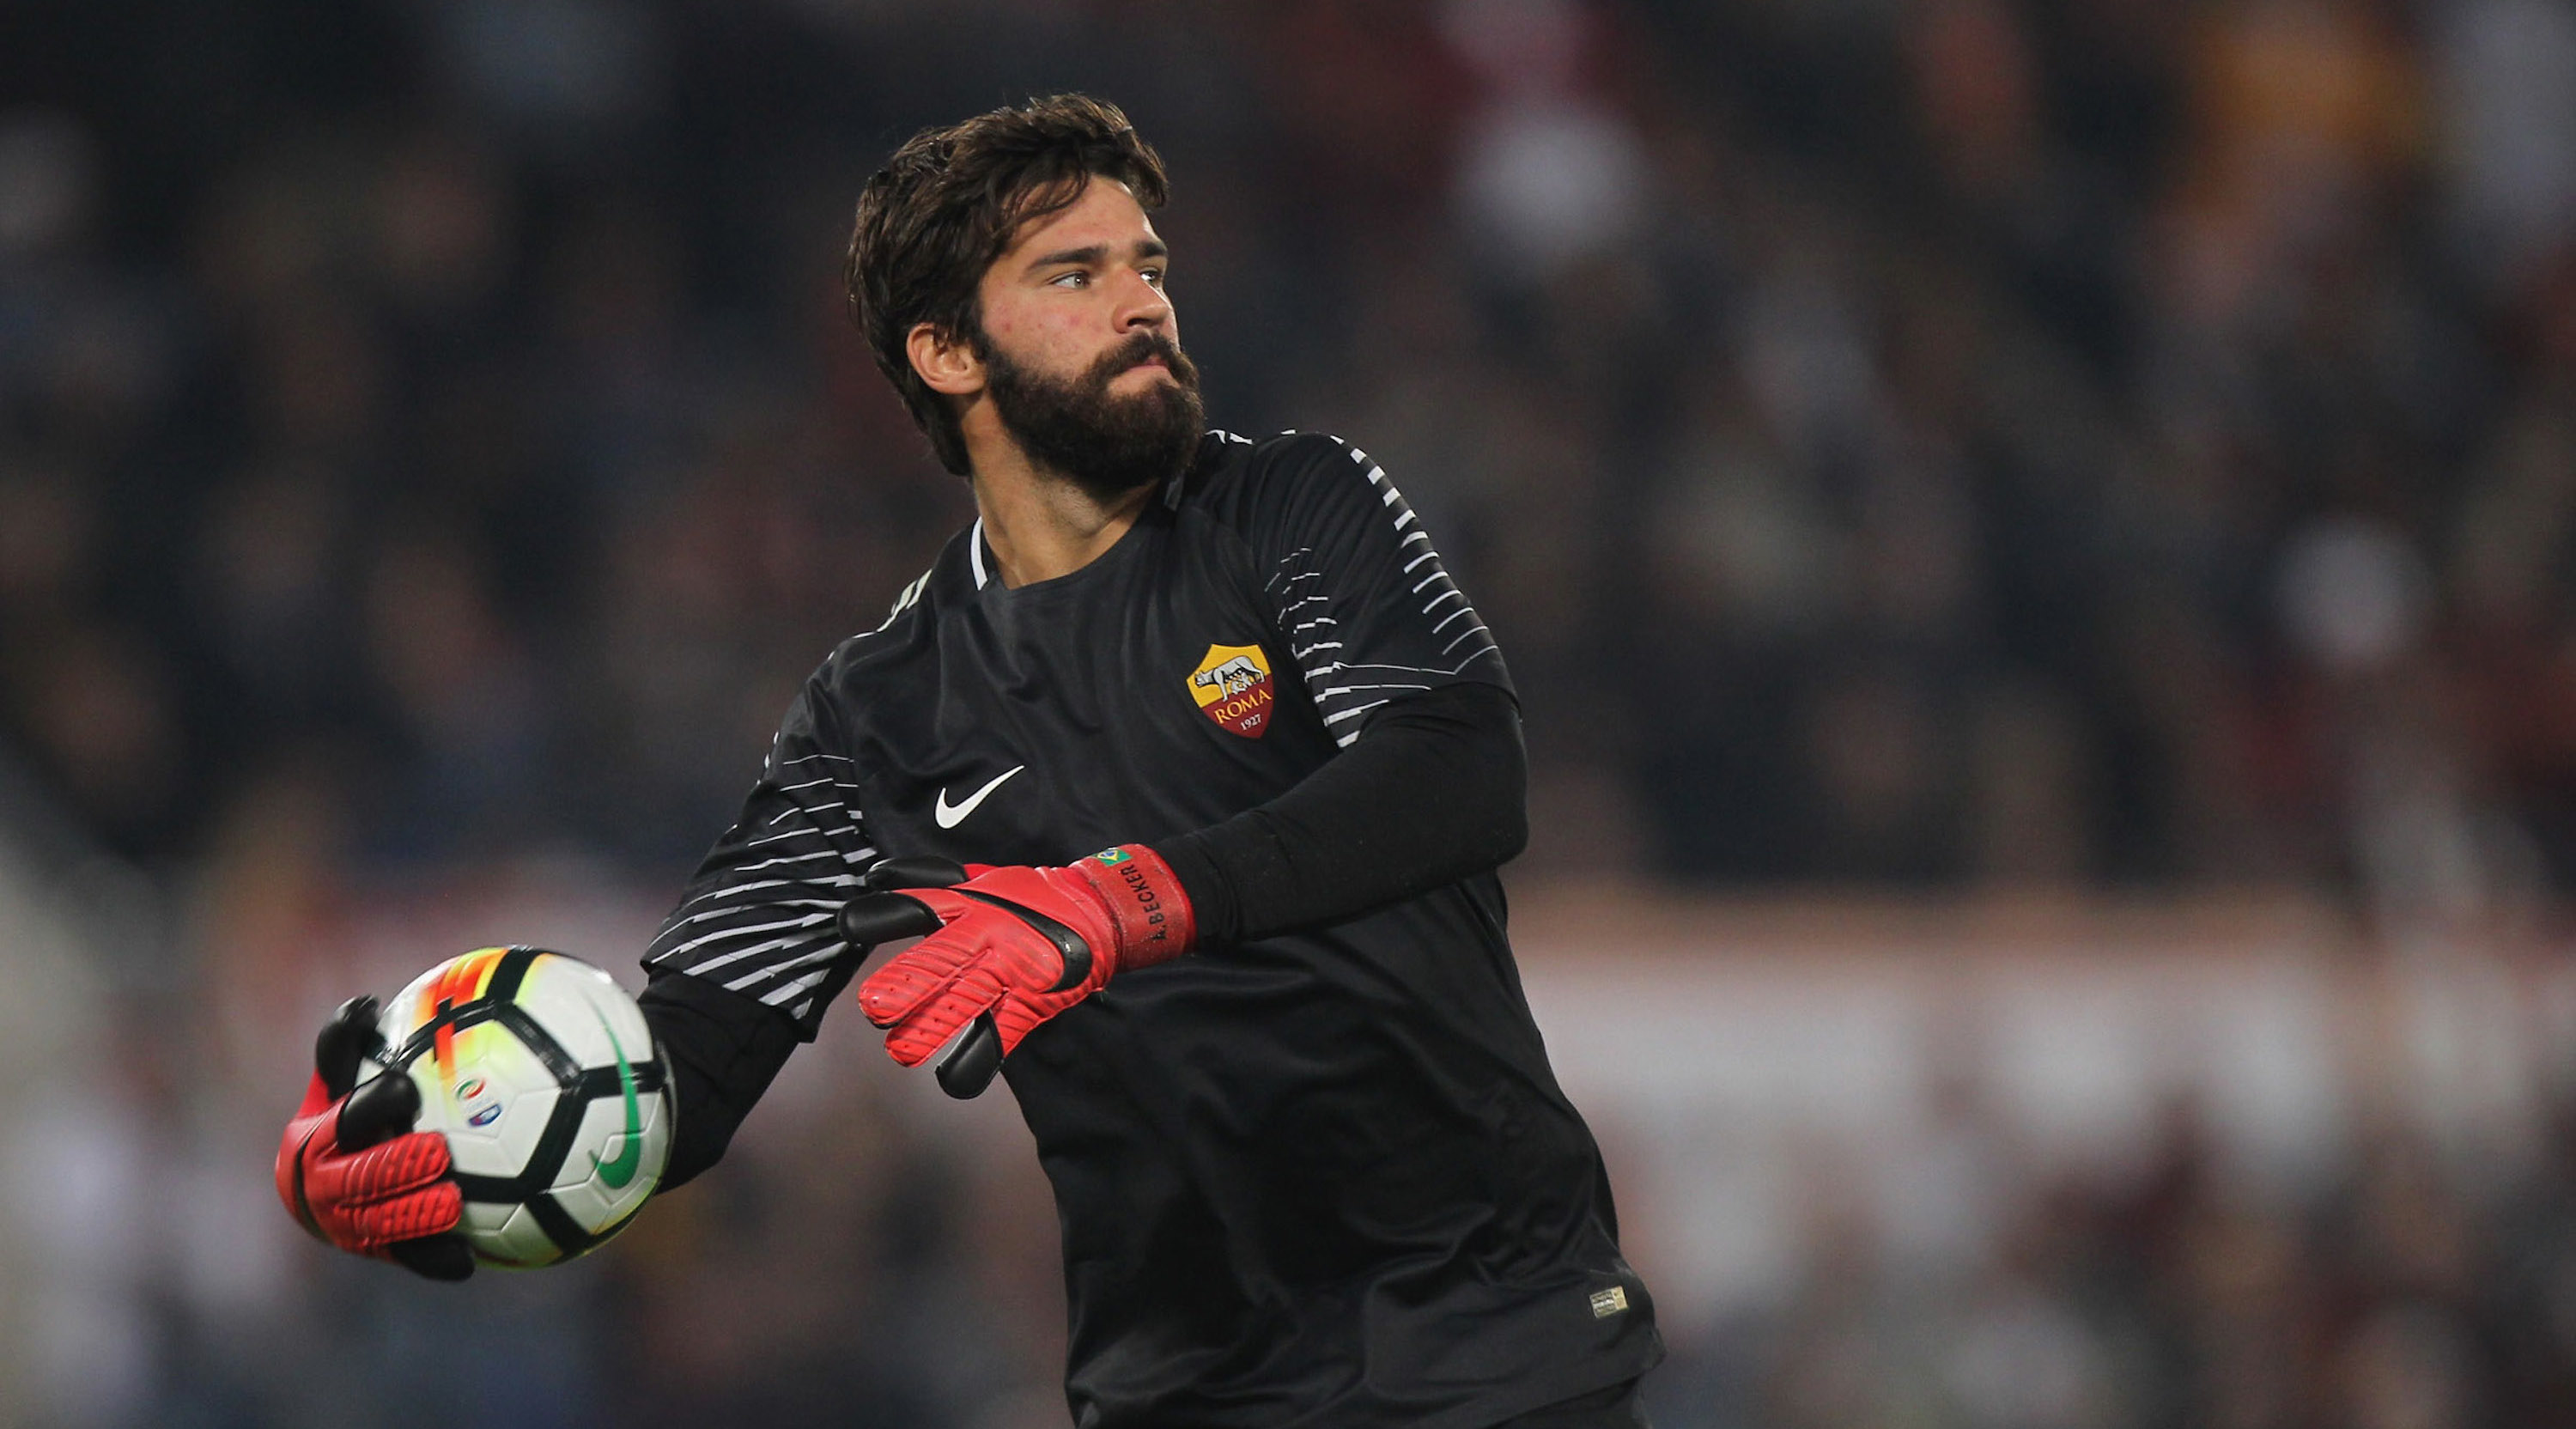 ROME, ITALY - OCTOBER 14: AS Roma goalkeeper Alisson in action during the Serie A match between AS Roma and SSC Napoli at Stadio Olimpico on October 14, 2017 in Rome, Italy. (Photo by Paolo Bruno/Getty Images)